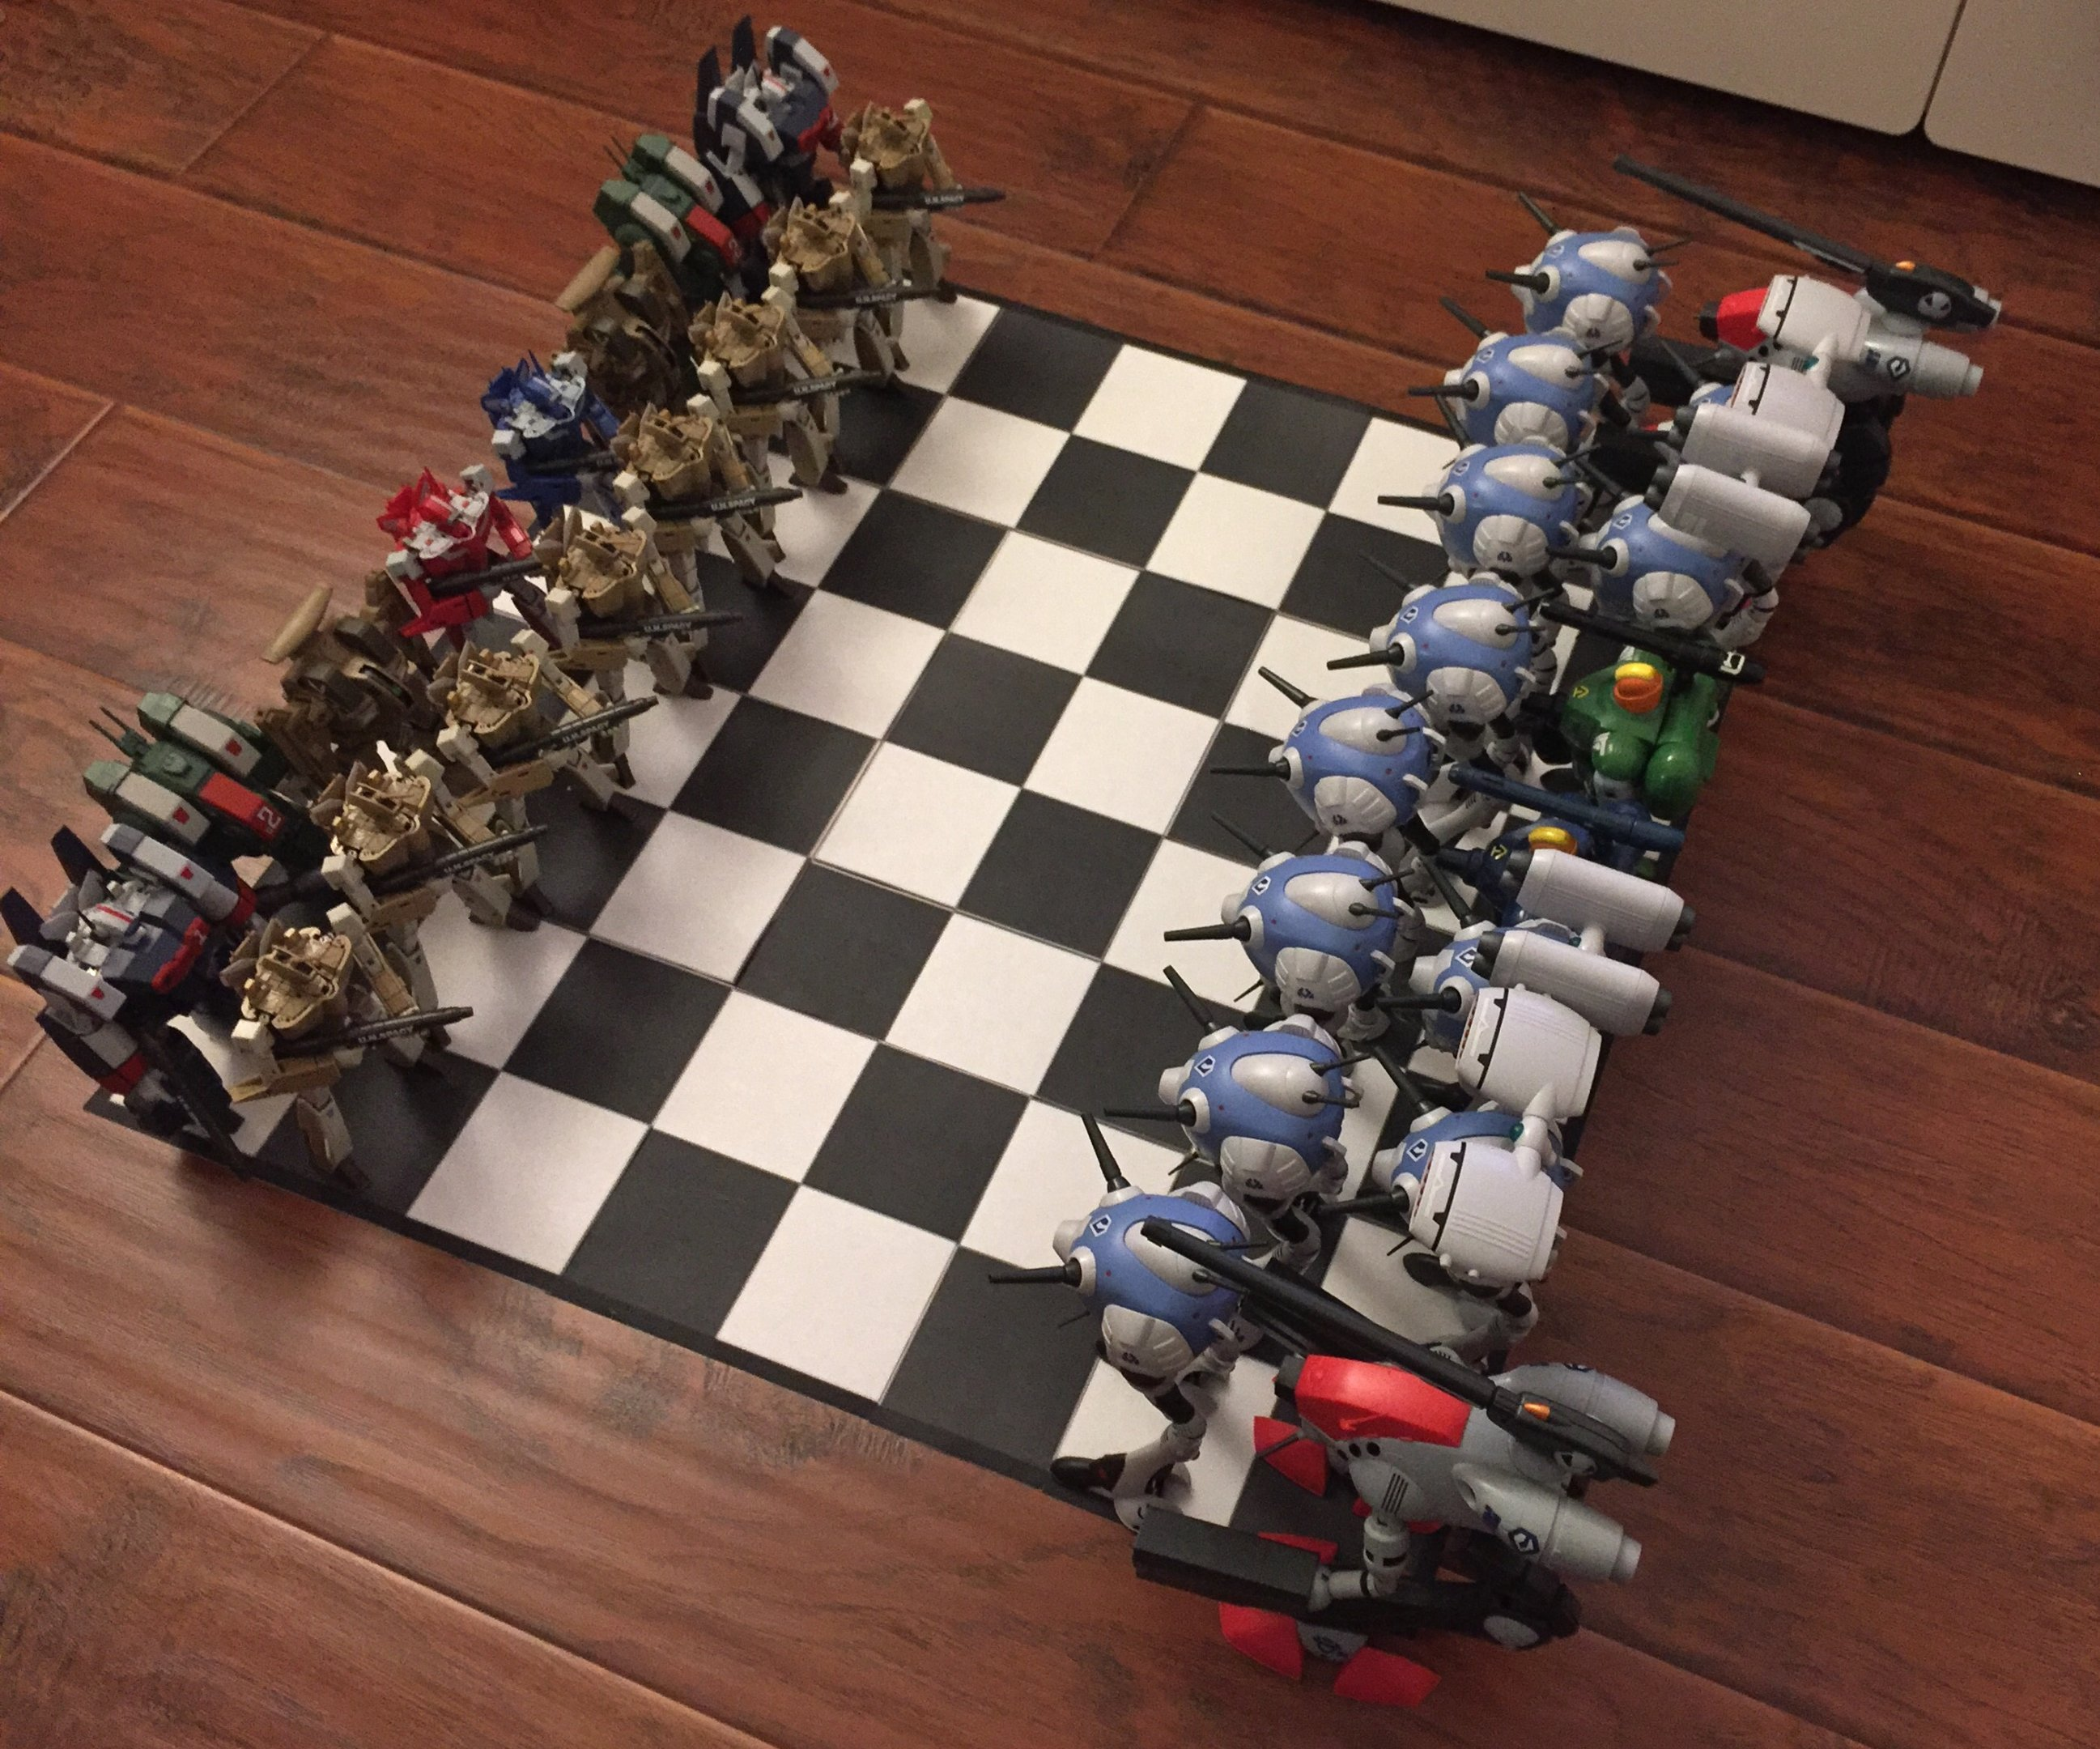 sh9000's collection